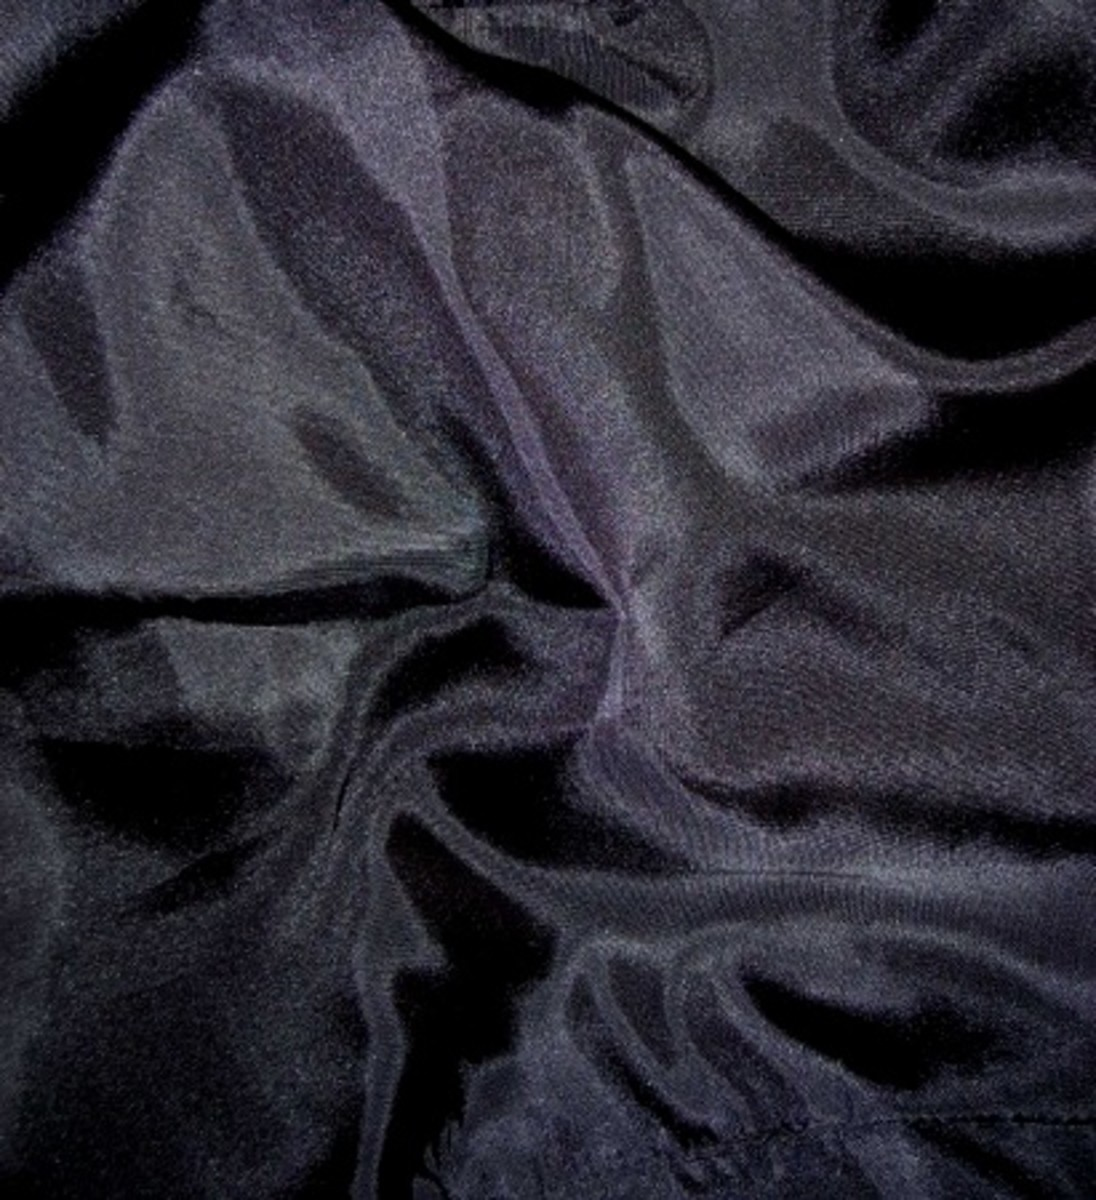 Black satin fabric